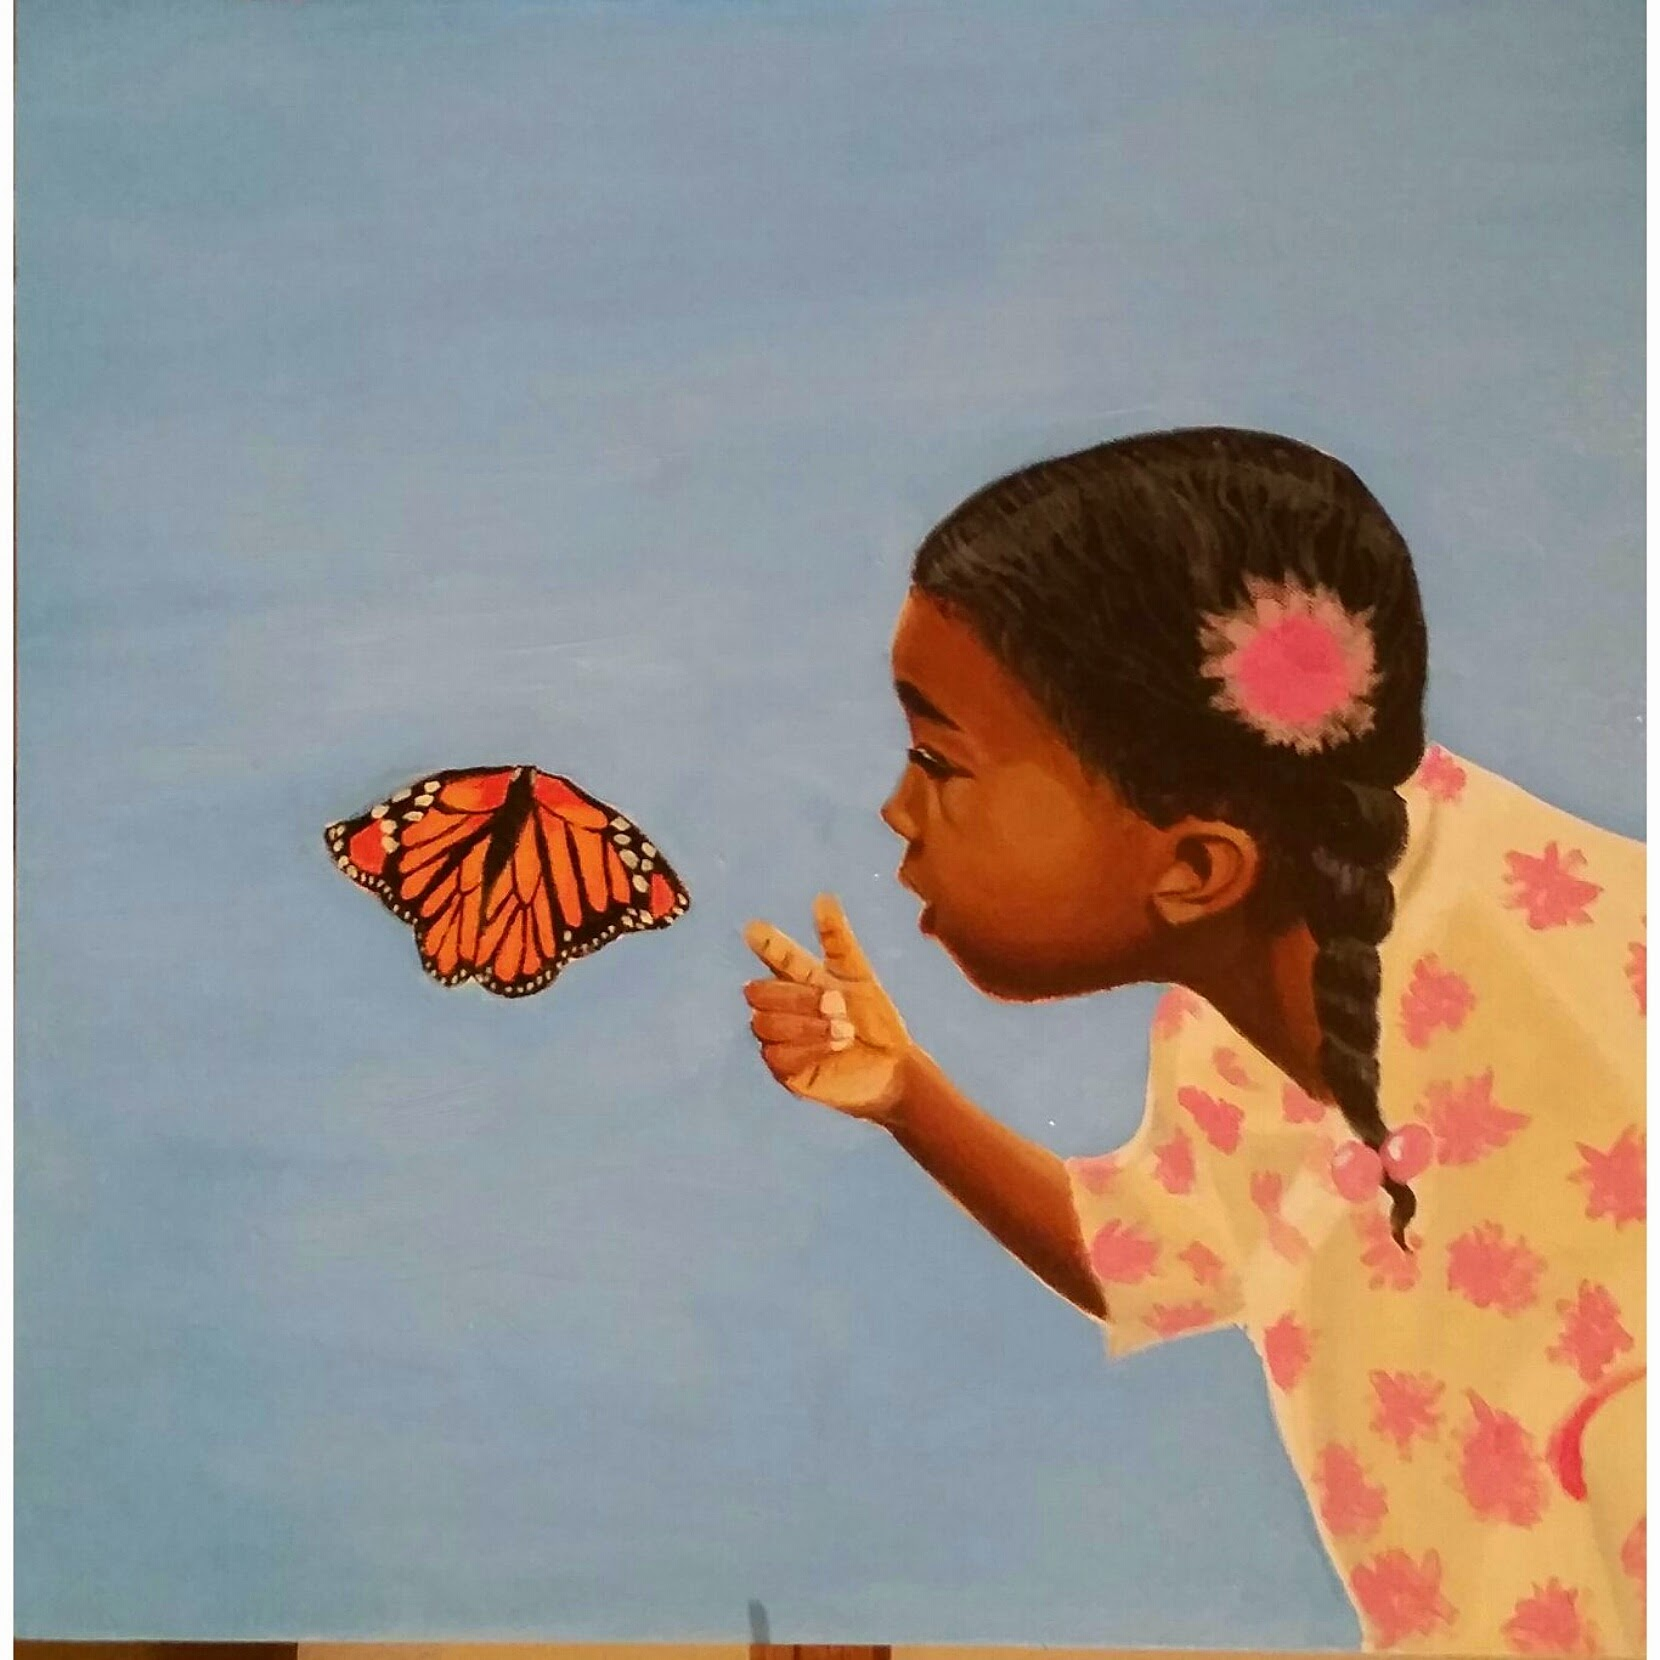 The Curious Butterfly